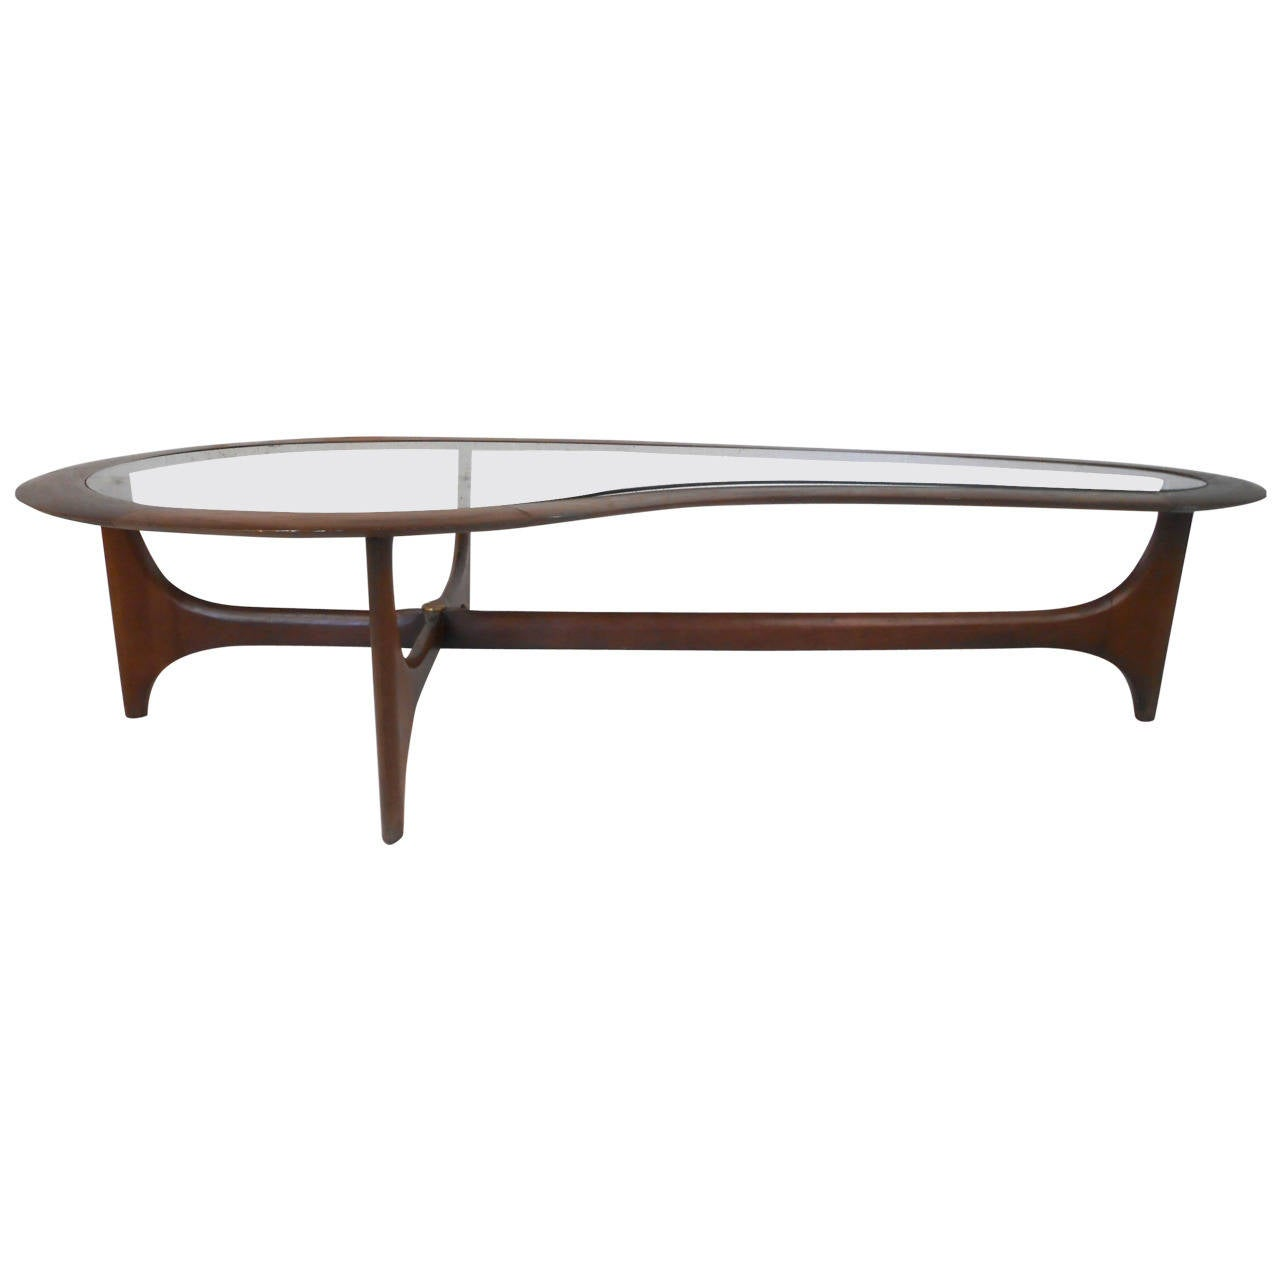 Mid century modern pearsall style kidney coffee table by for Mid century modern coffee table